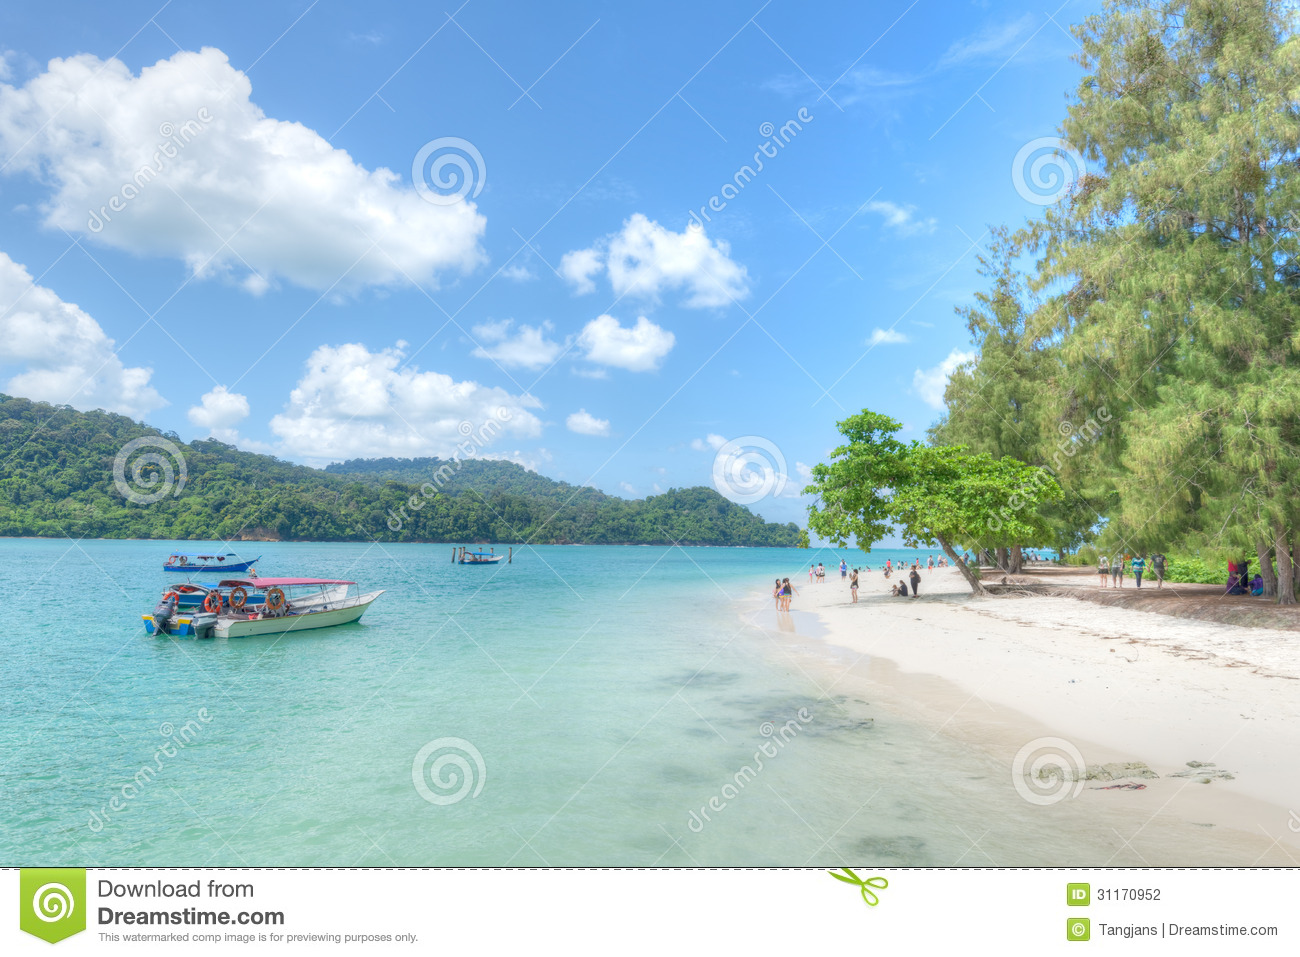 essay about langkawi island Discover the history of langkawi island, saturated in colorful myths and legends, involving tragic love stories, mythical beings, and legendary pirates.